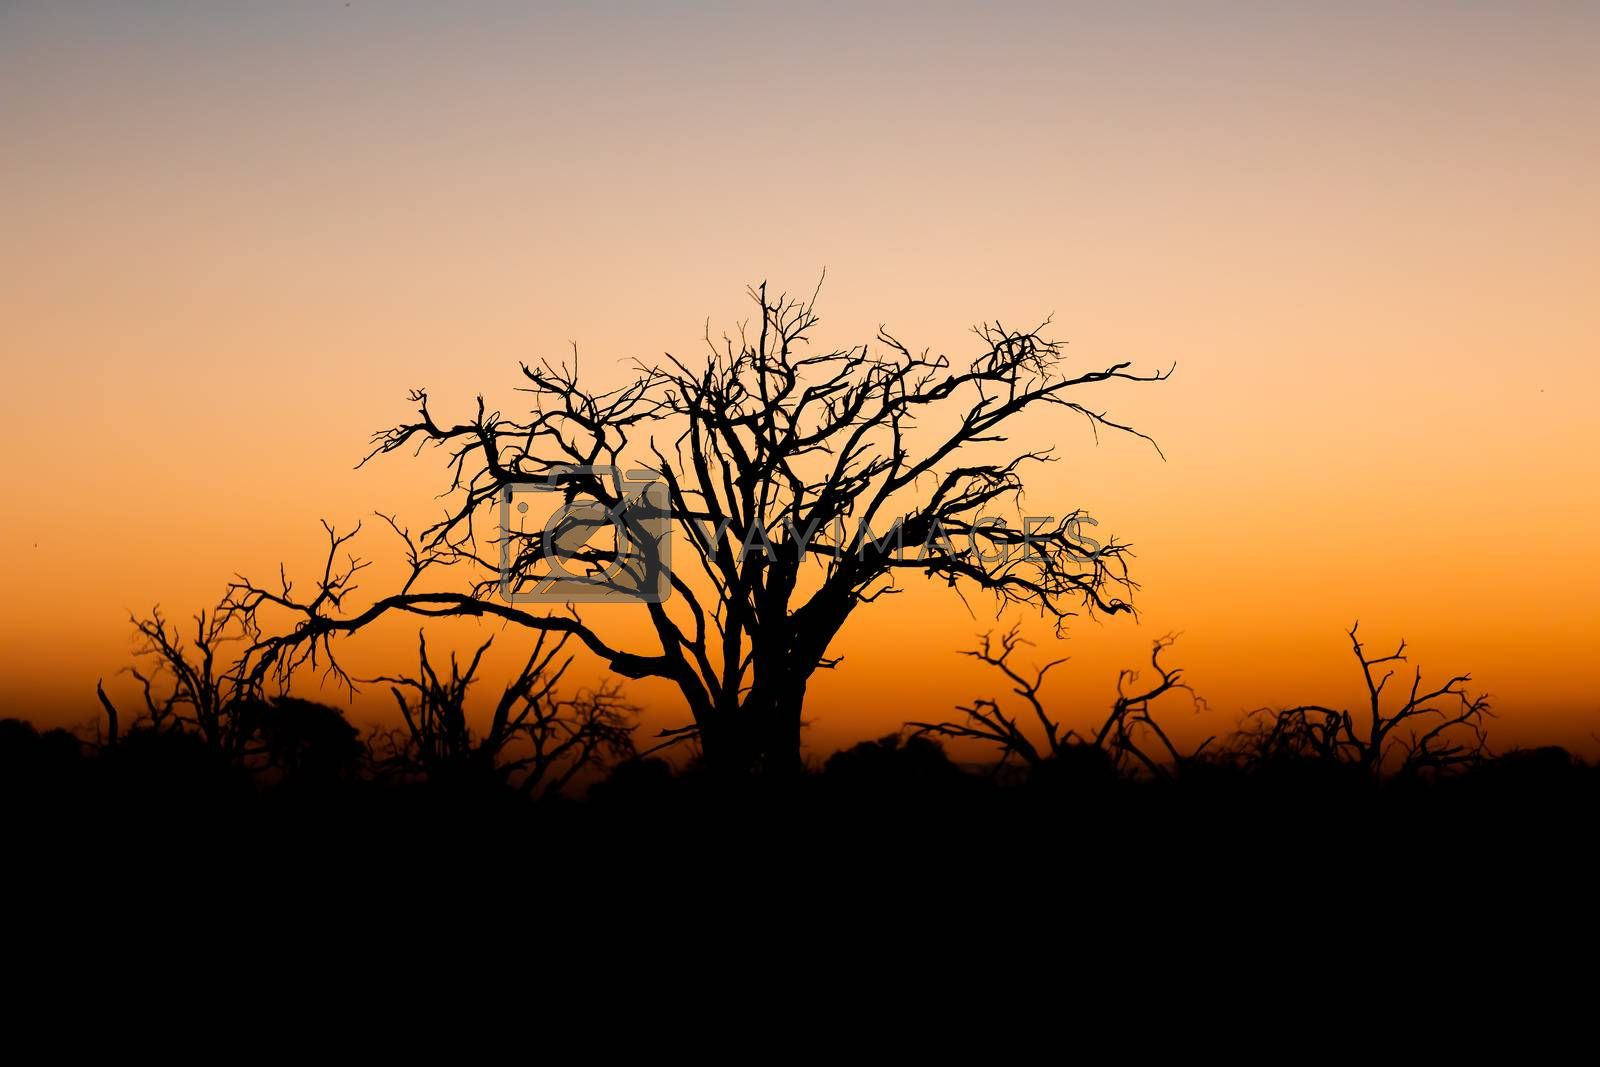 idyllic calm sunset with tree silhouette in front, Moremi Game reserve, Okavango Delta, Africa wilderness